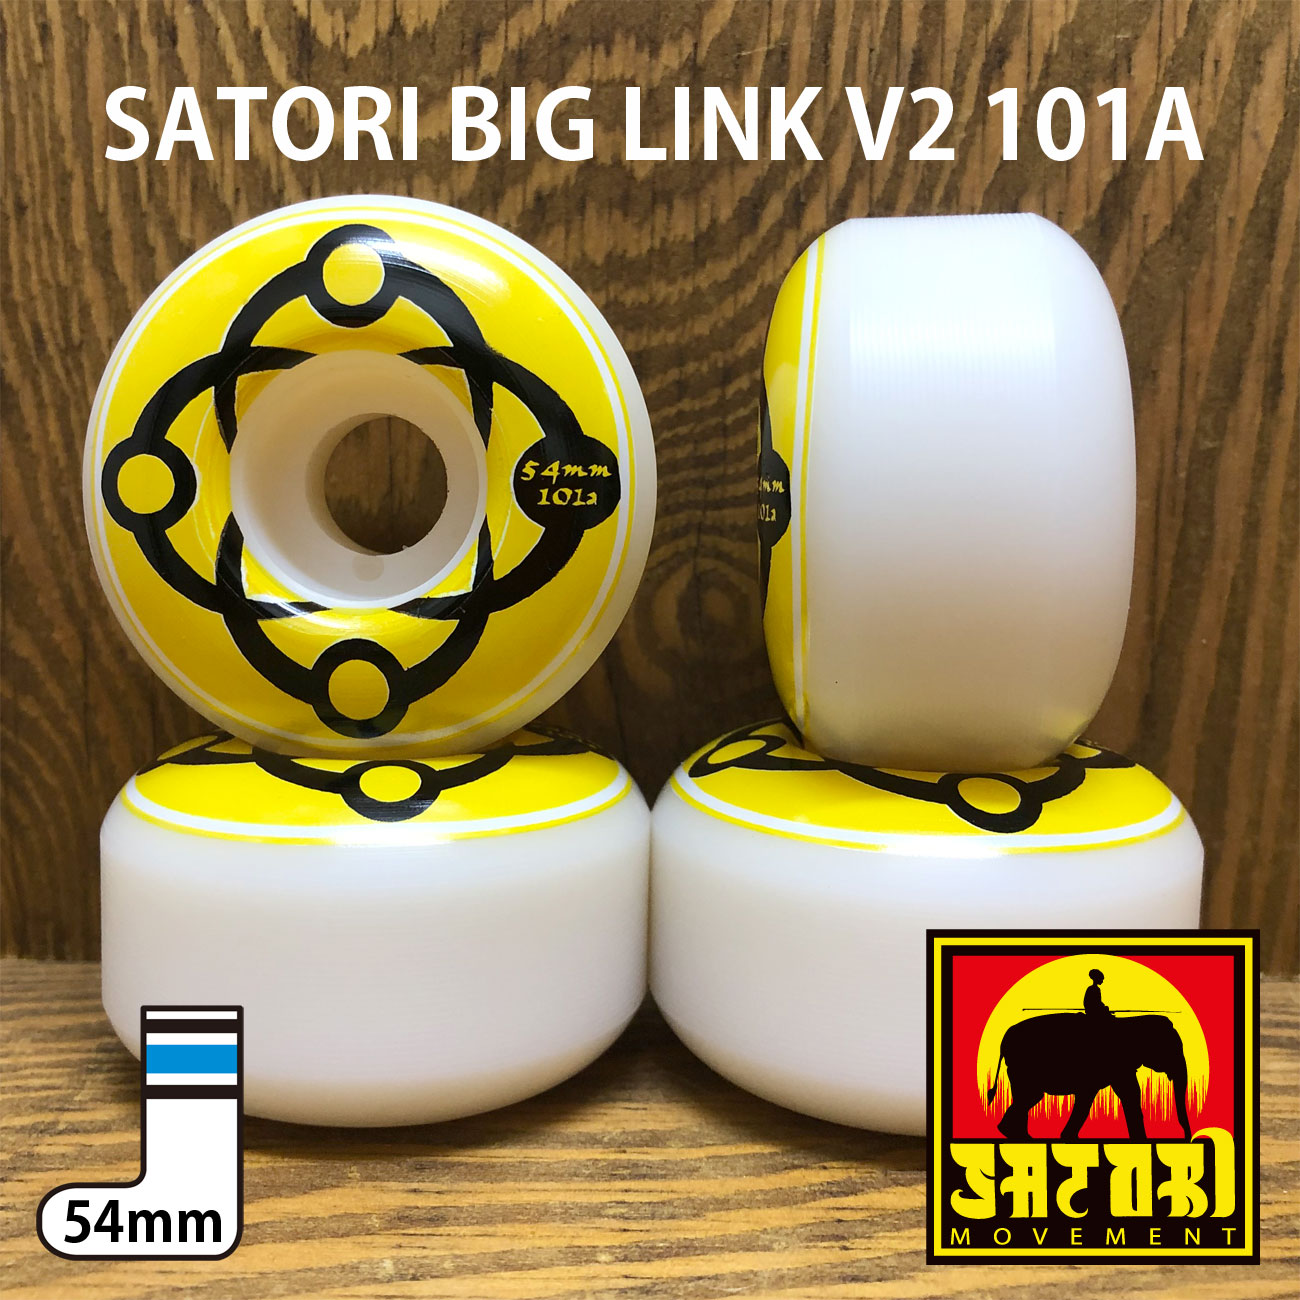 SATORI MOVEMENT BIG LINK V2 101A 54mm